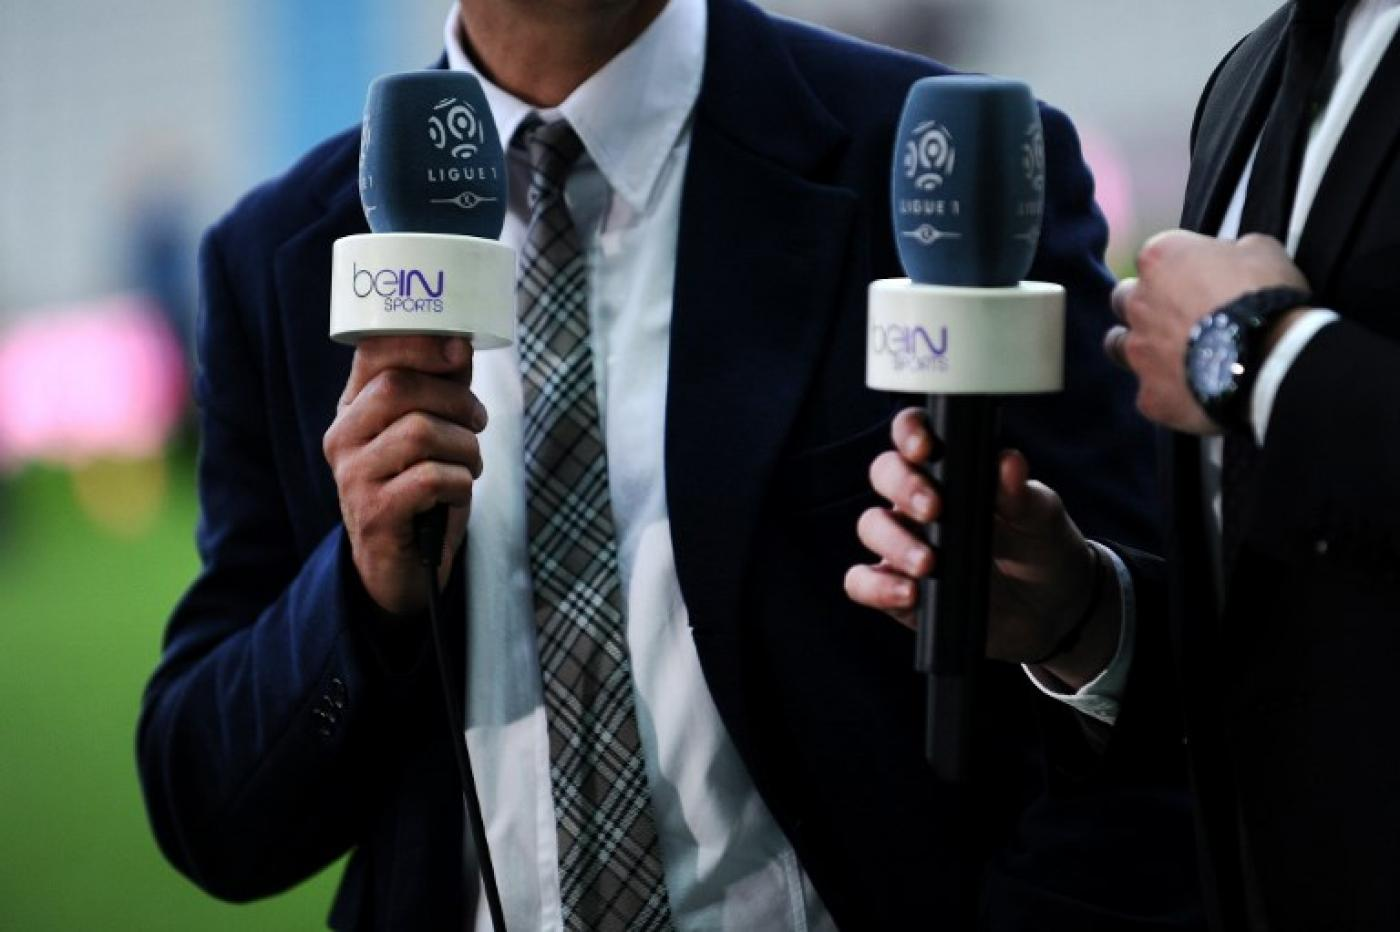 BeIN Sports, which has been barred from broadcasting in the kingdom since mid-2017 under a dispute with Doha.